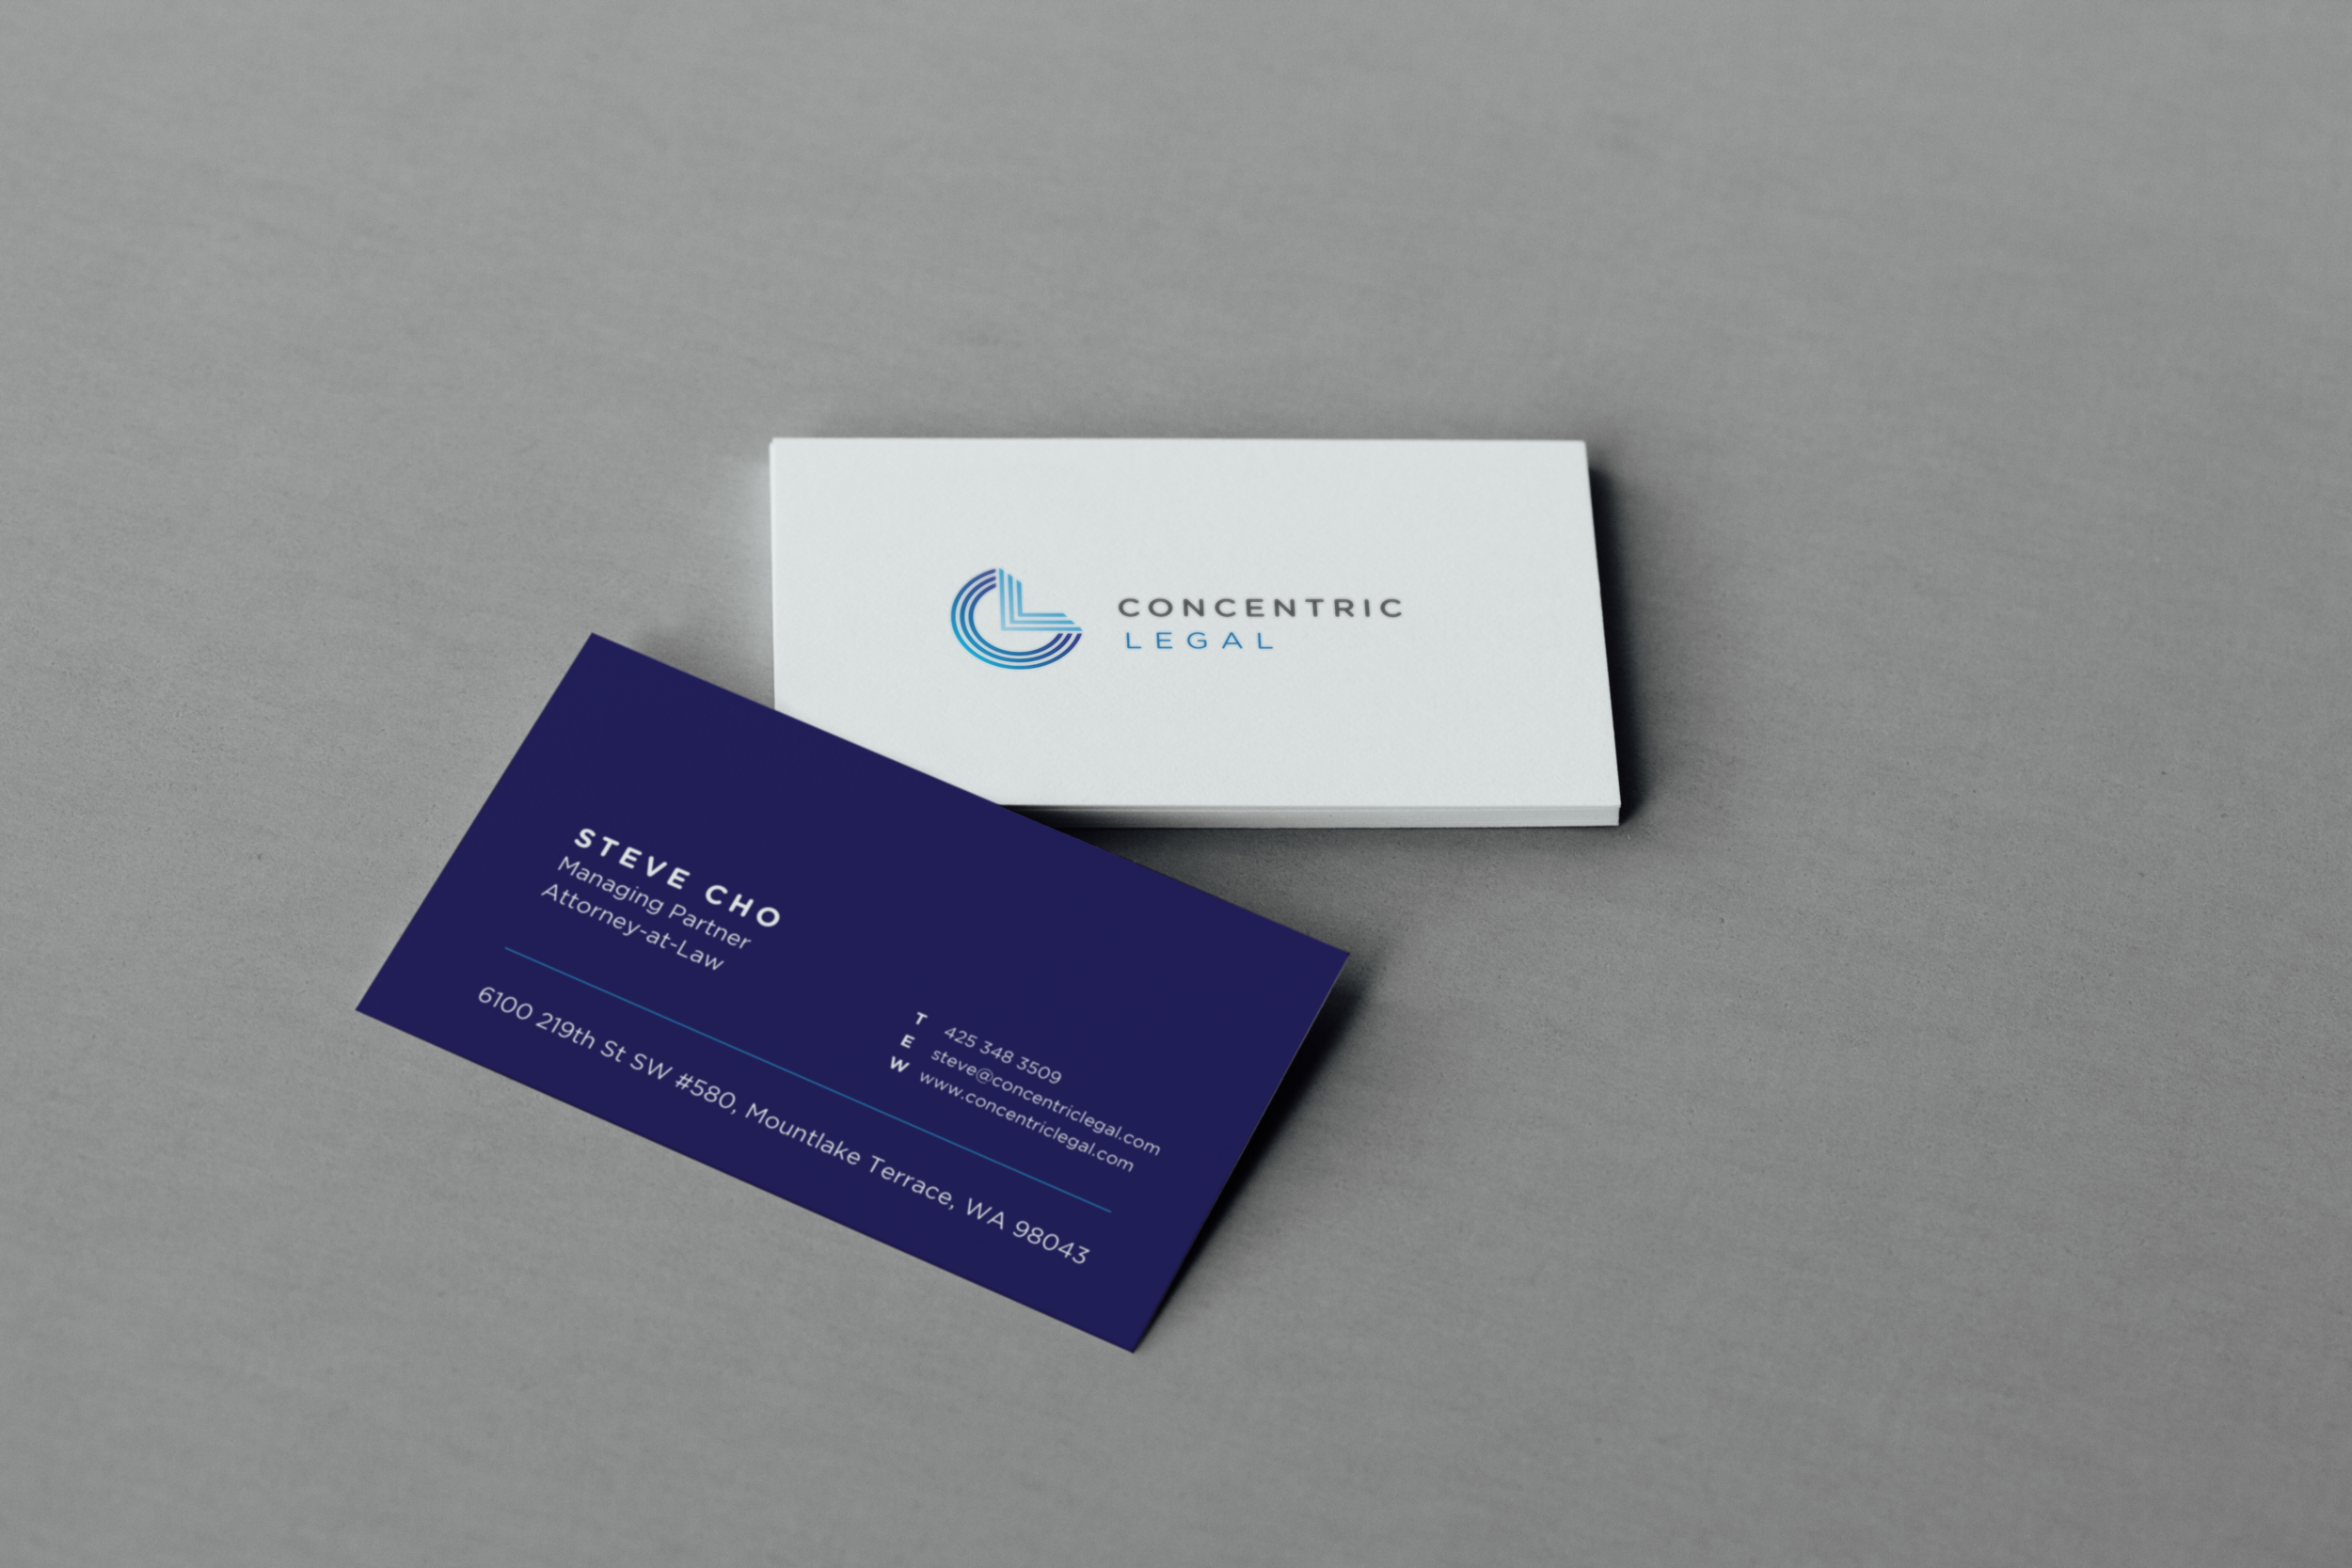 Concentric Legal Business Cards 2.png